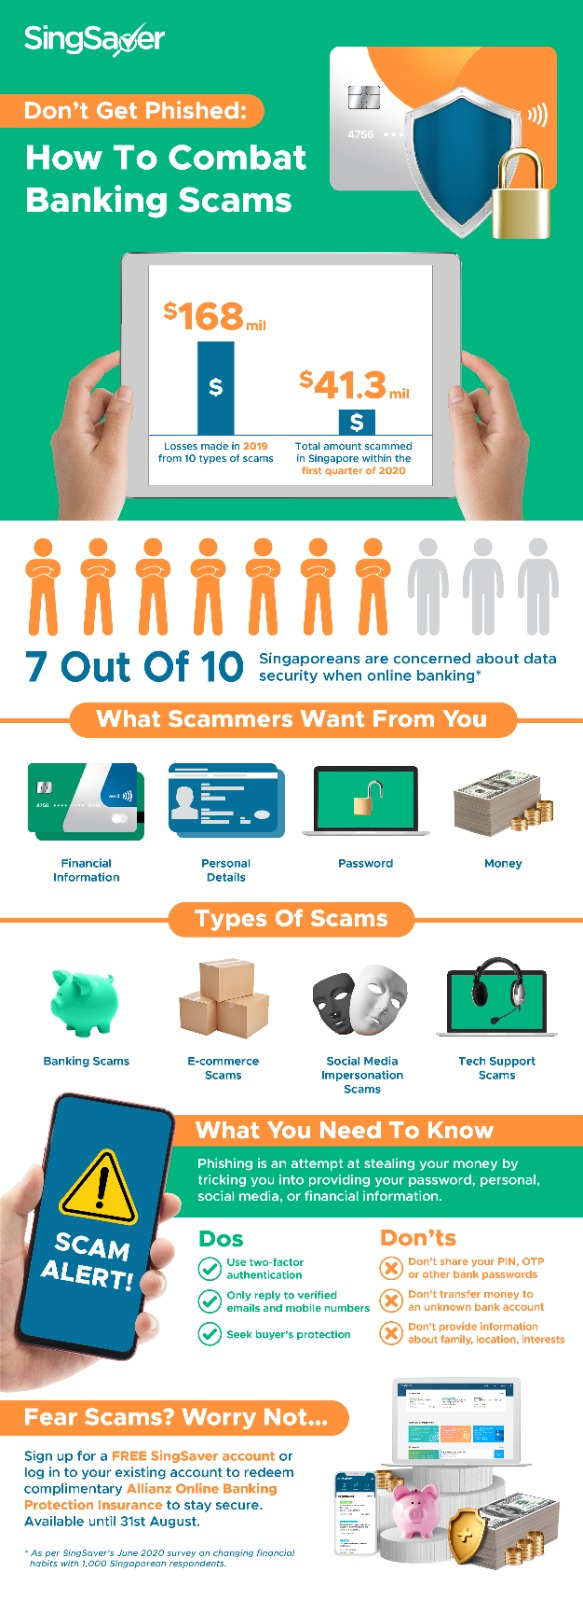 NFOGRAPHIC-Sing-Saver-How-to-combat-banking-scams